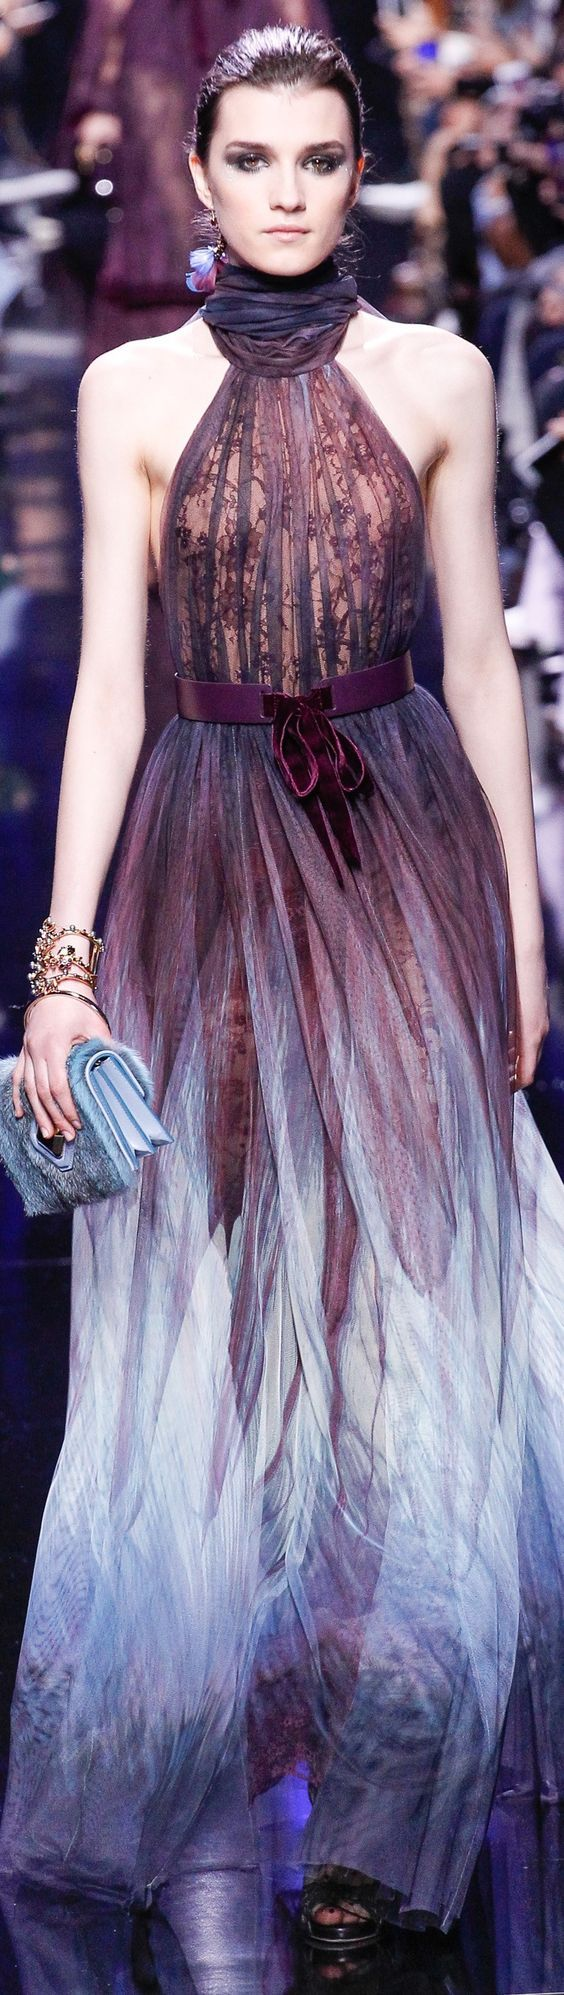 Elie saab fall rtw purple and pale blue bridal haute couture